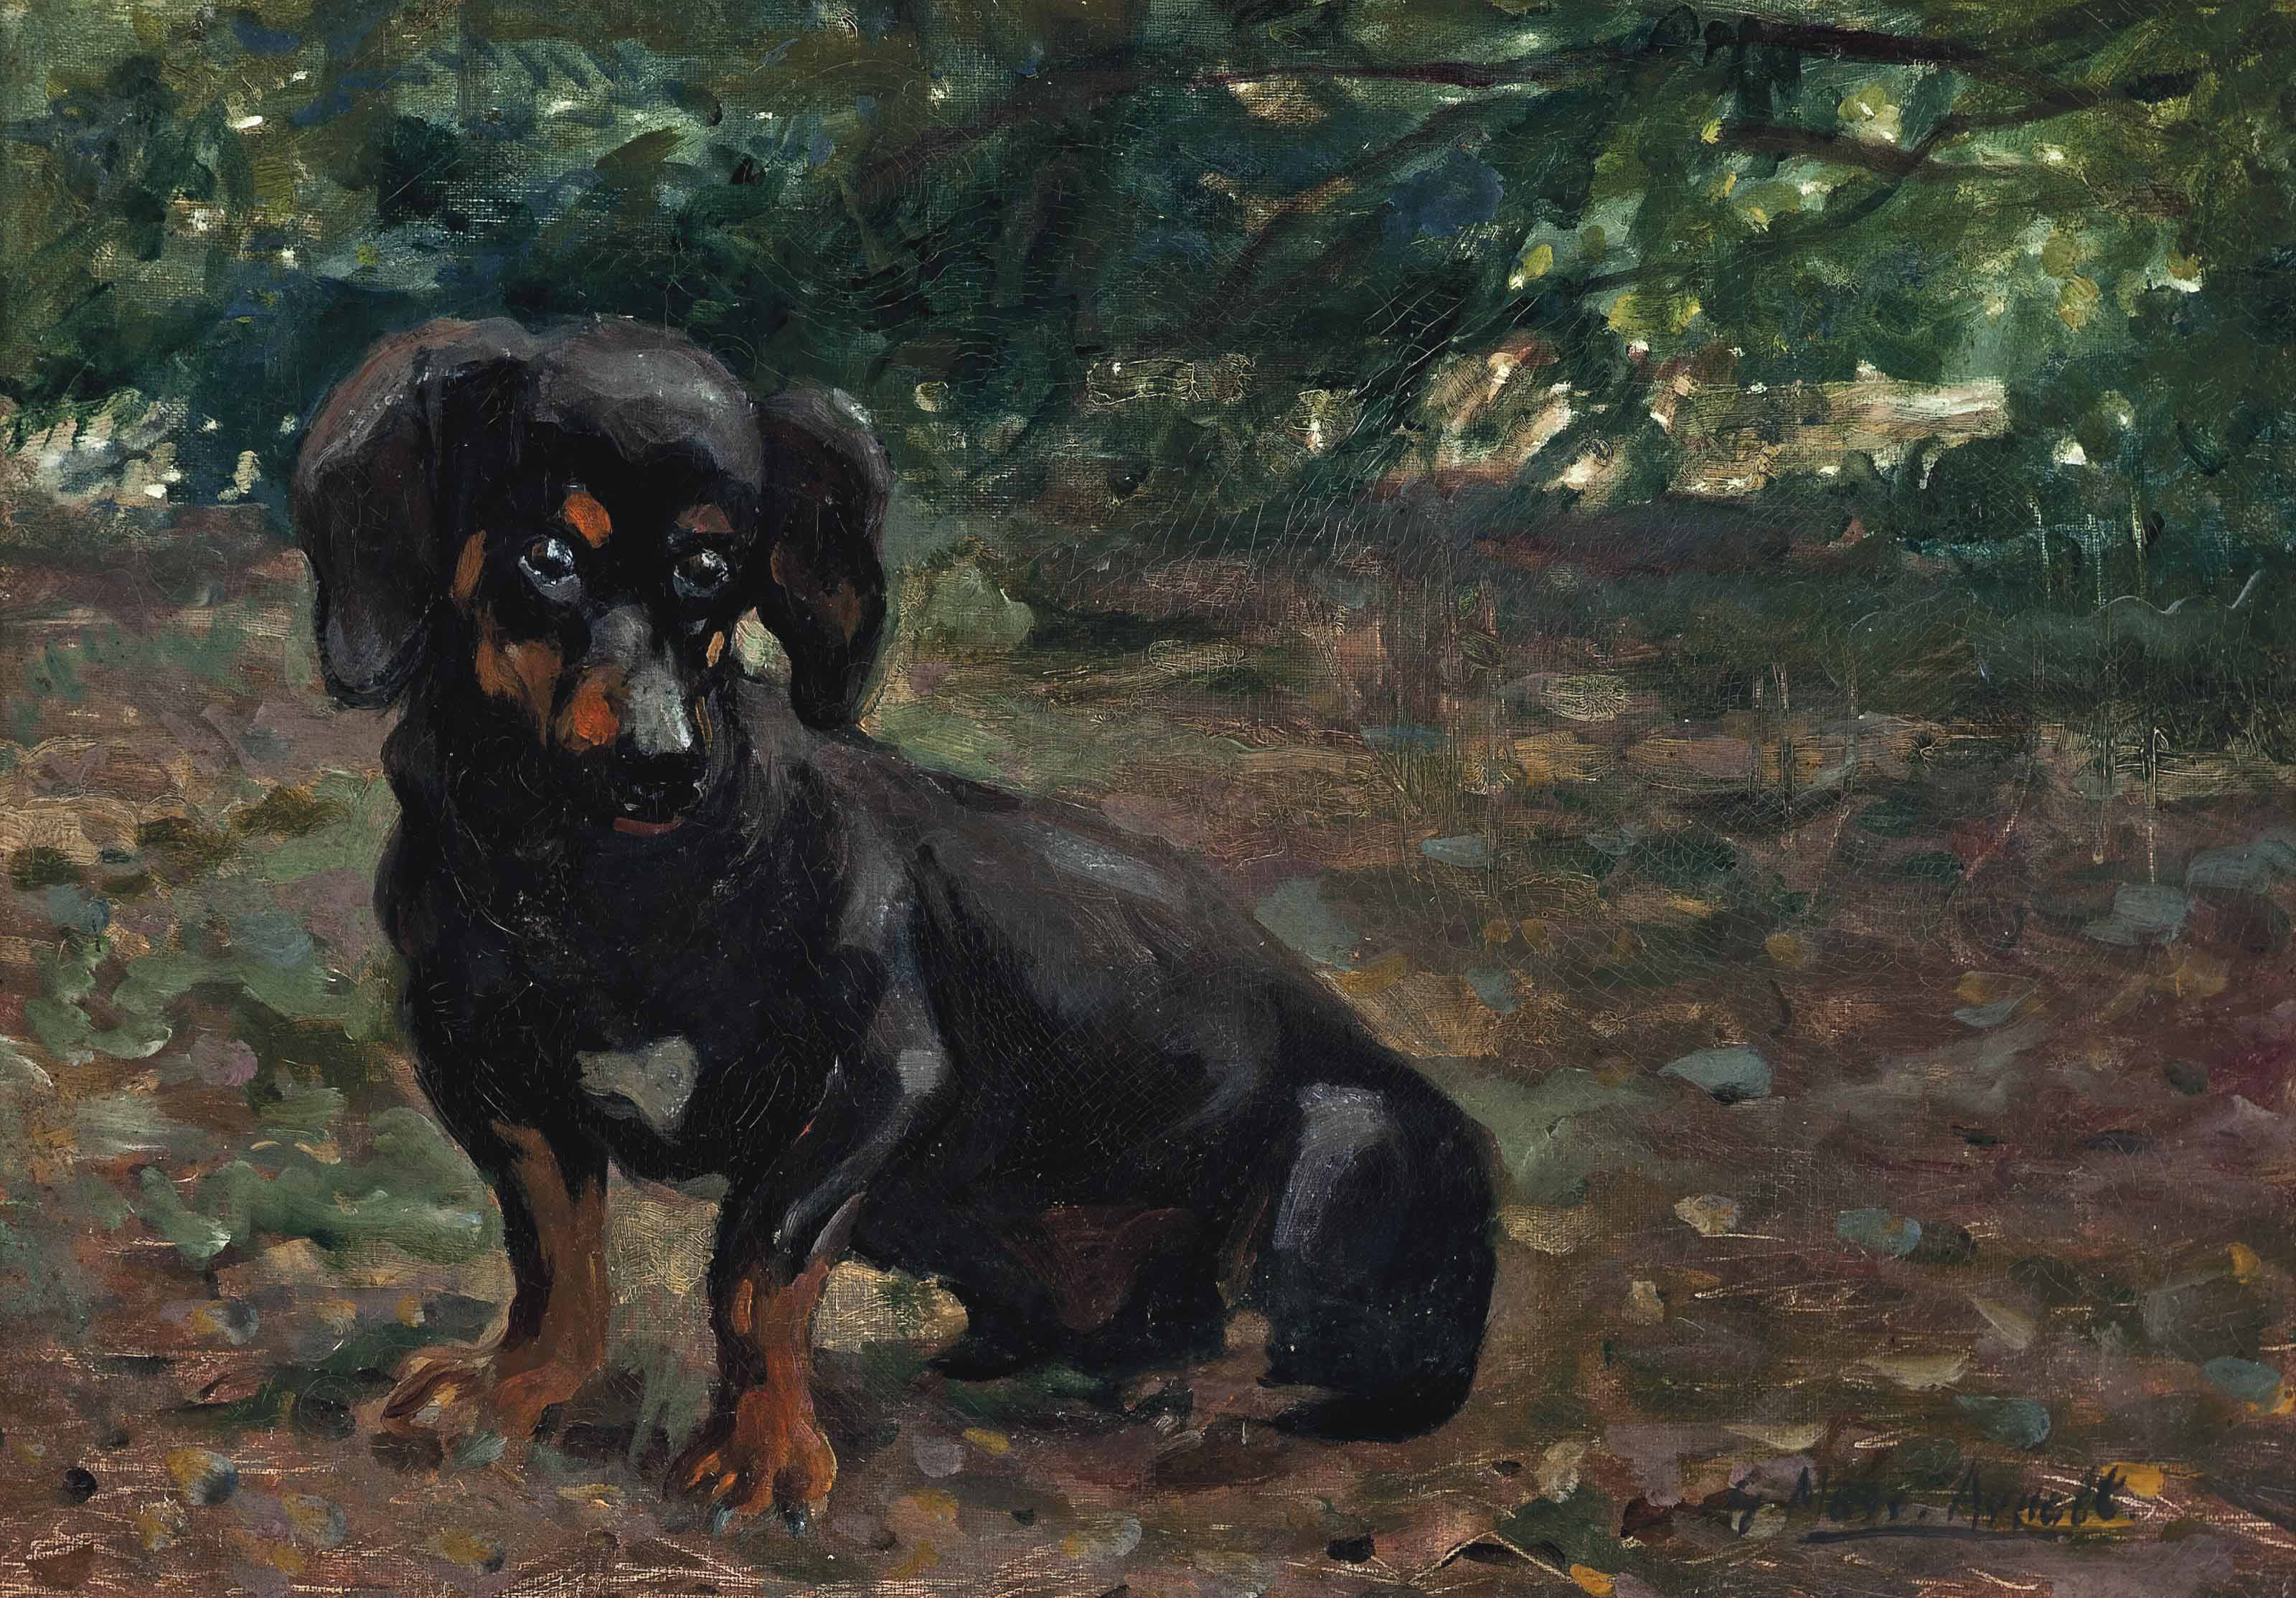 A Dachshund in a sunlit wood